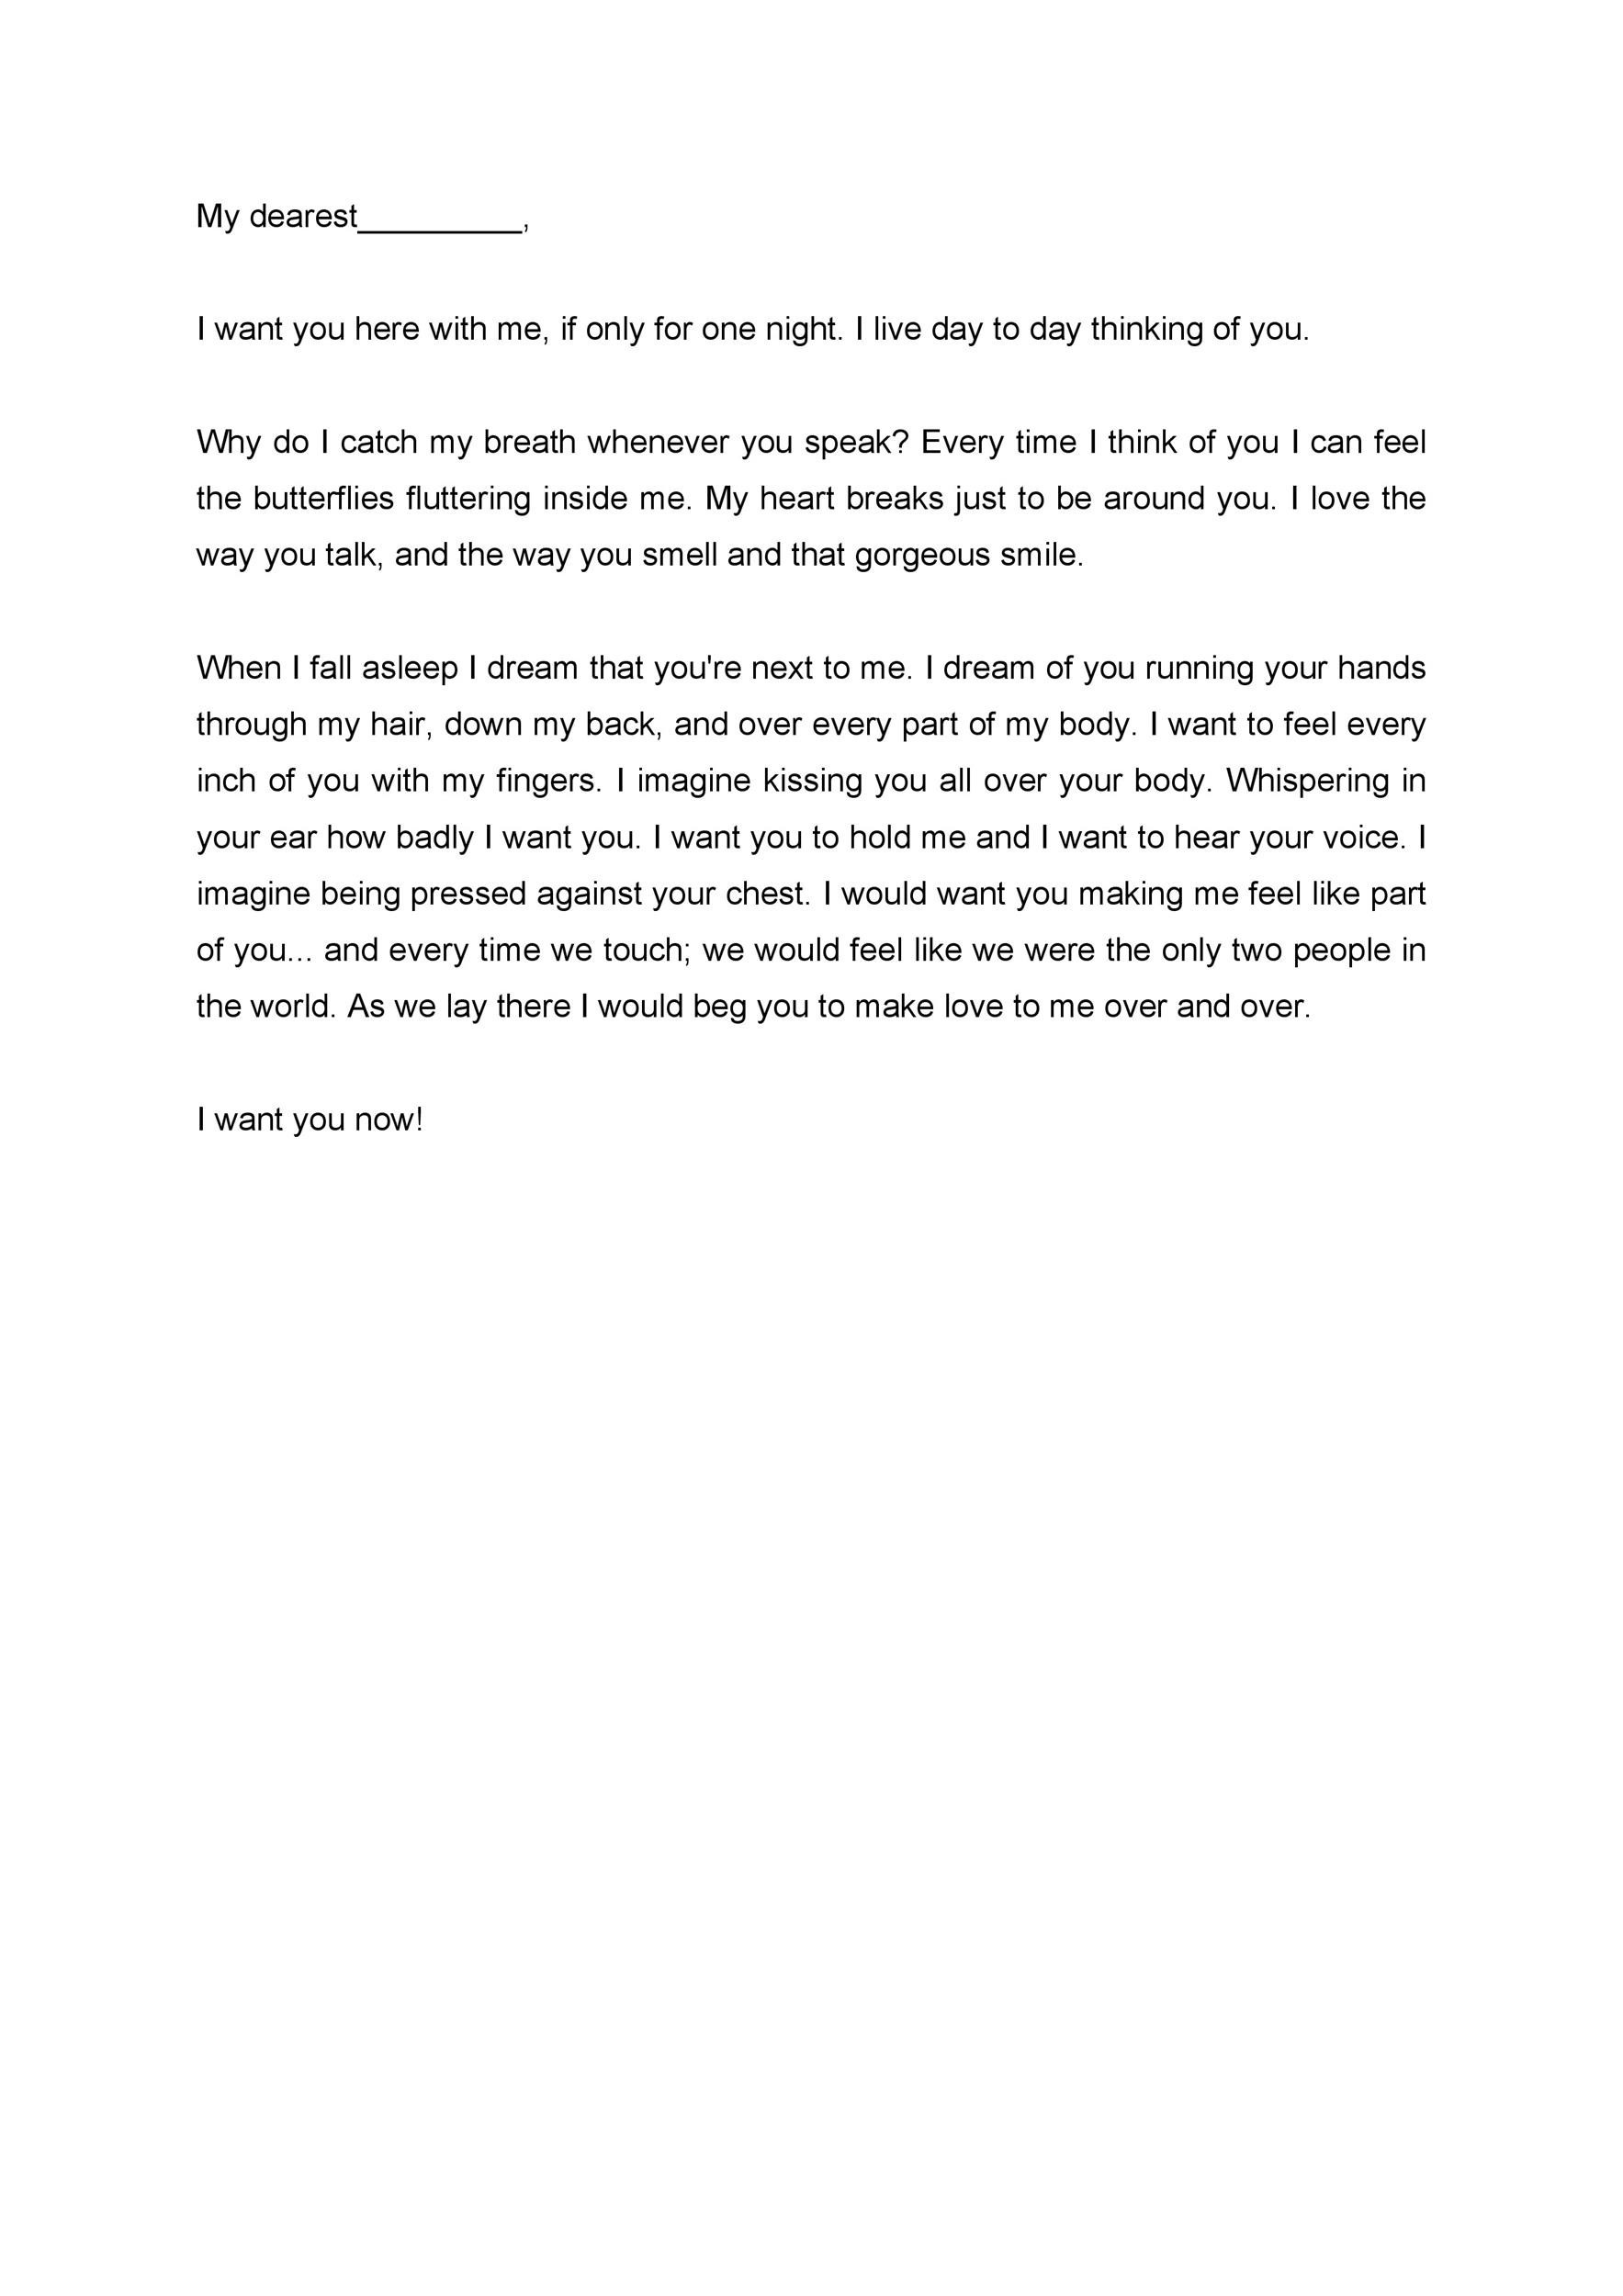 Love Letter Template Choice Image - Template Design Ideas - love letter template for him